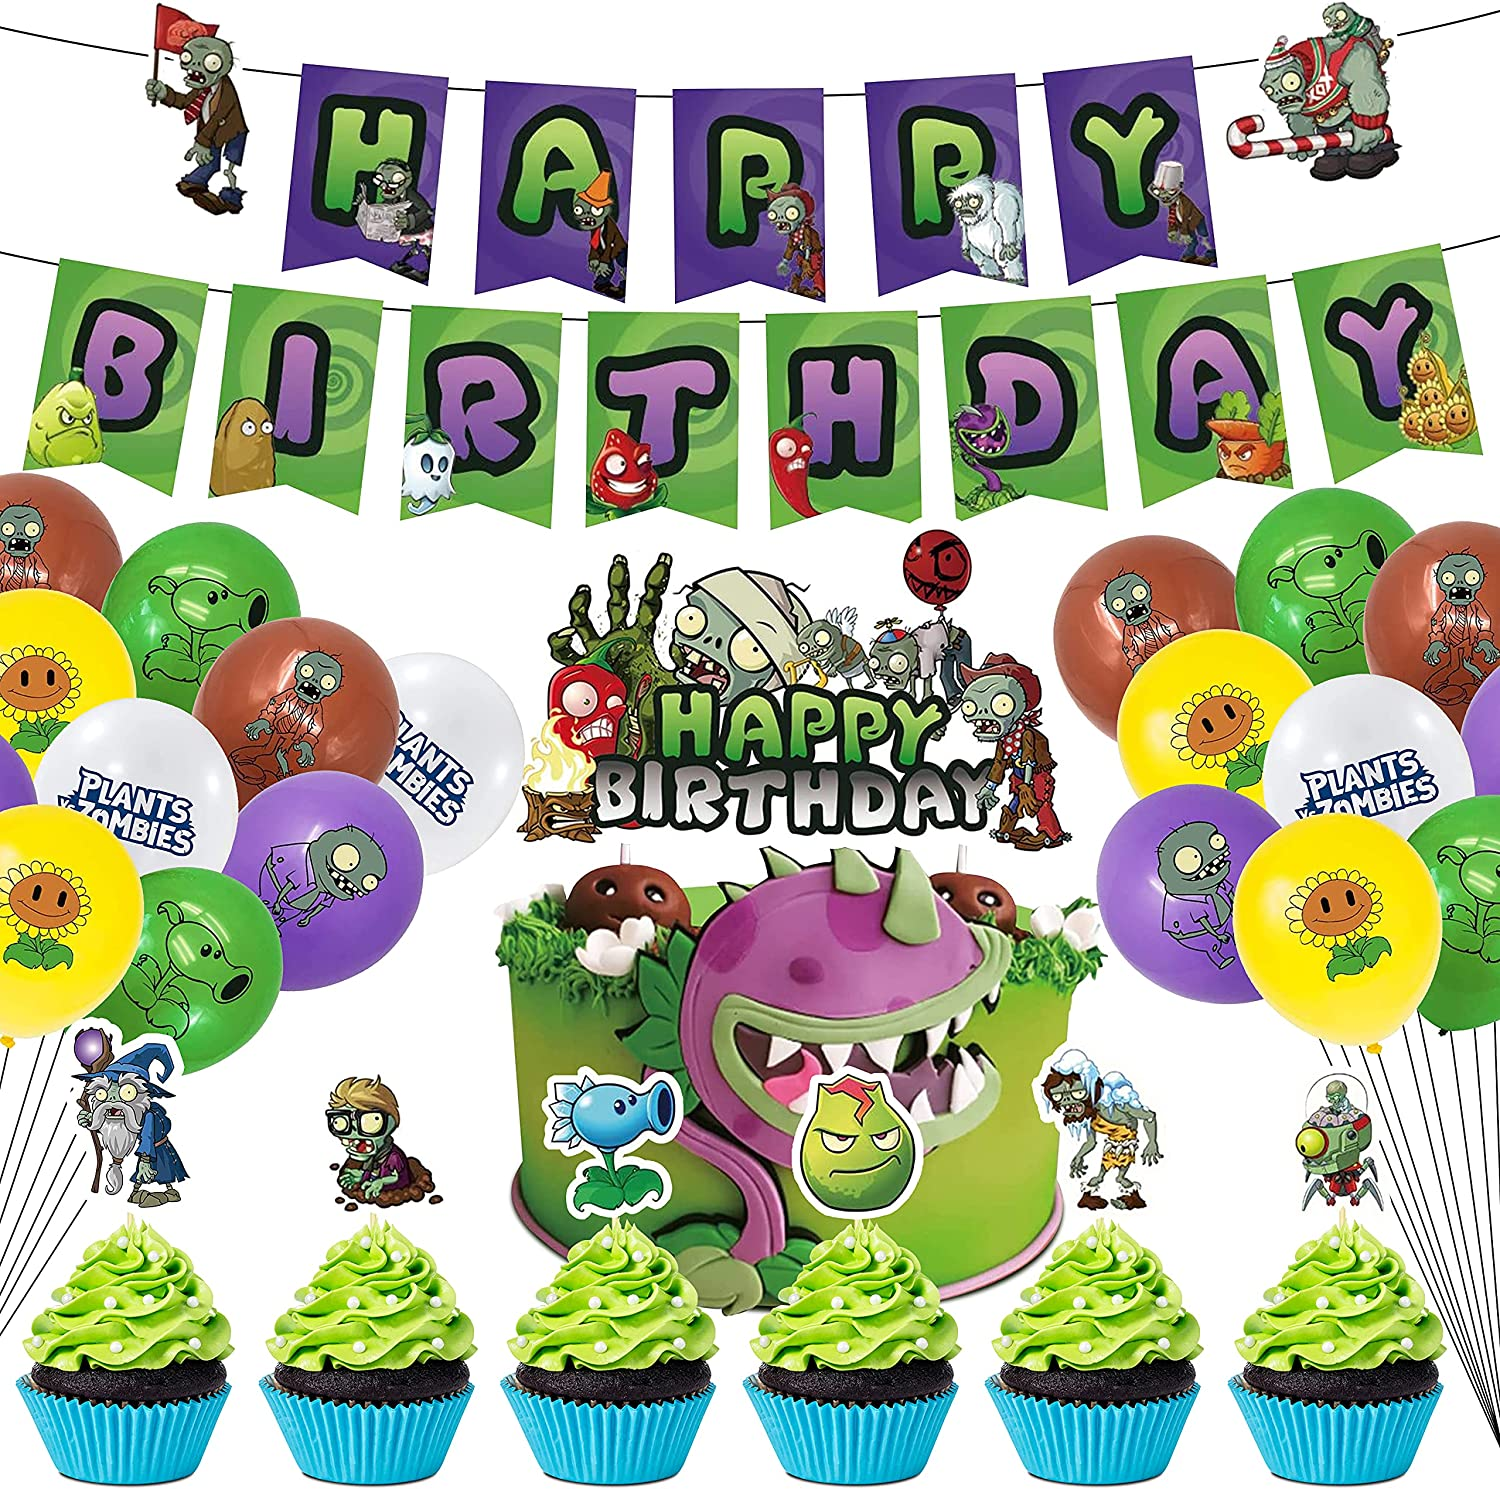 BLATOMY Plant vs Zombies Birthday Party Supplies - 38Pcs PVZ Party Supplies Birthday Decorations Pack with Happy Birthday Banner, PVZ Balloons, Cake Cupcake Topper for Kids Room Decor, Halloween